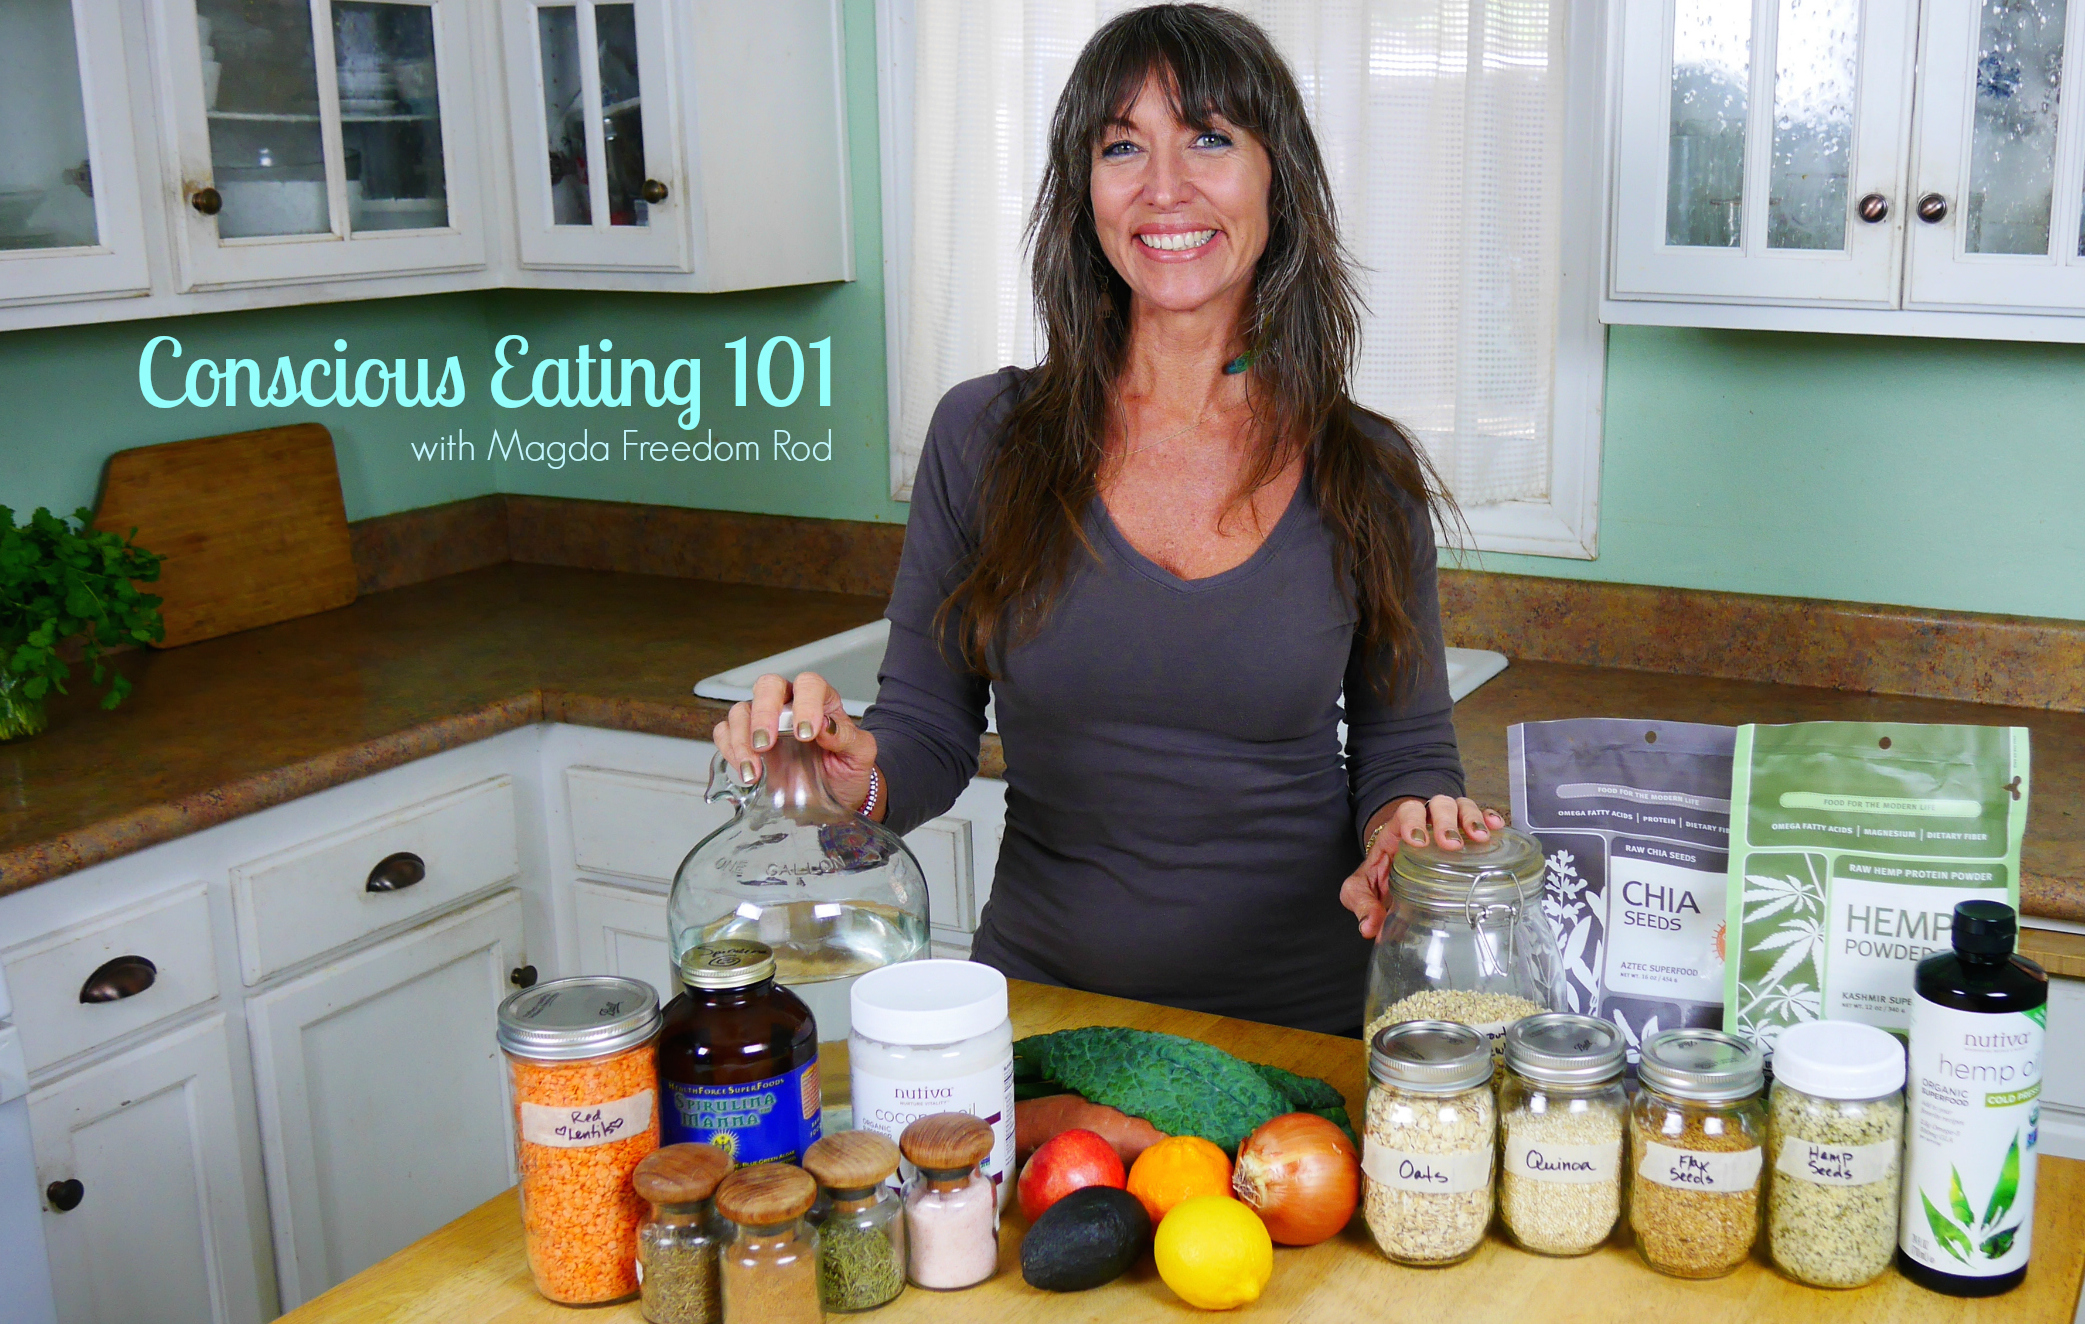 5 ways to add chia to your diet by magda freedom rod, neu faculty